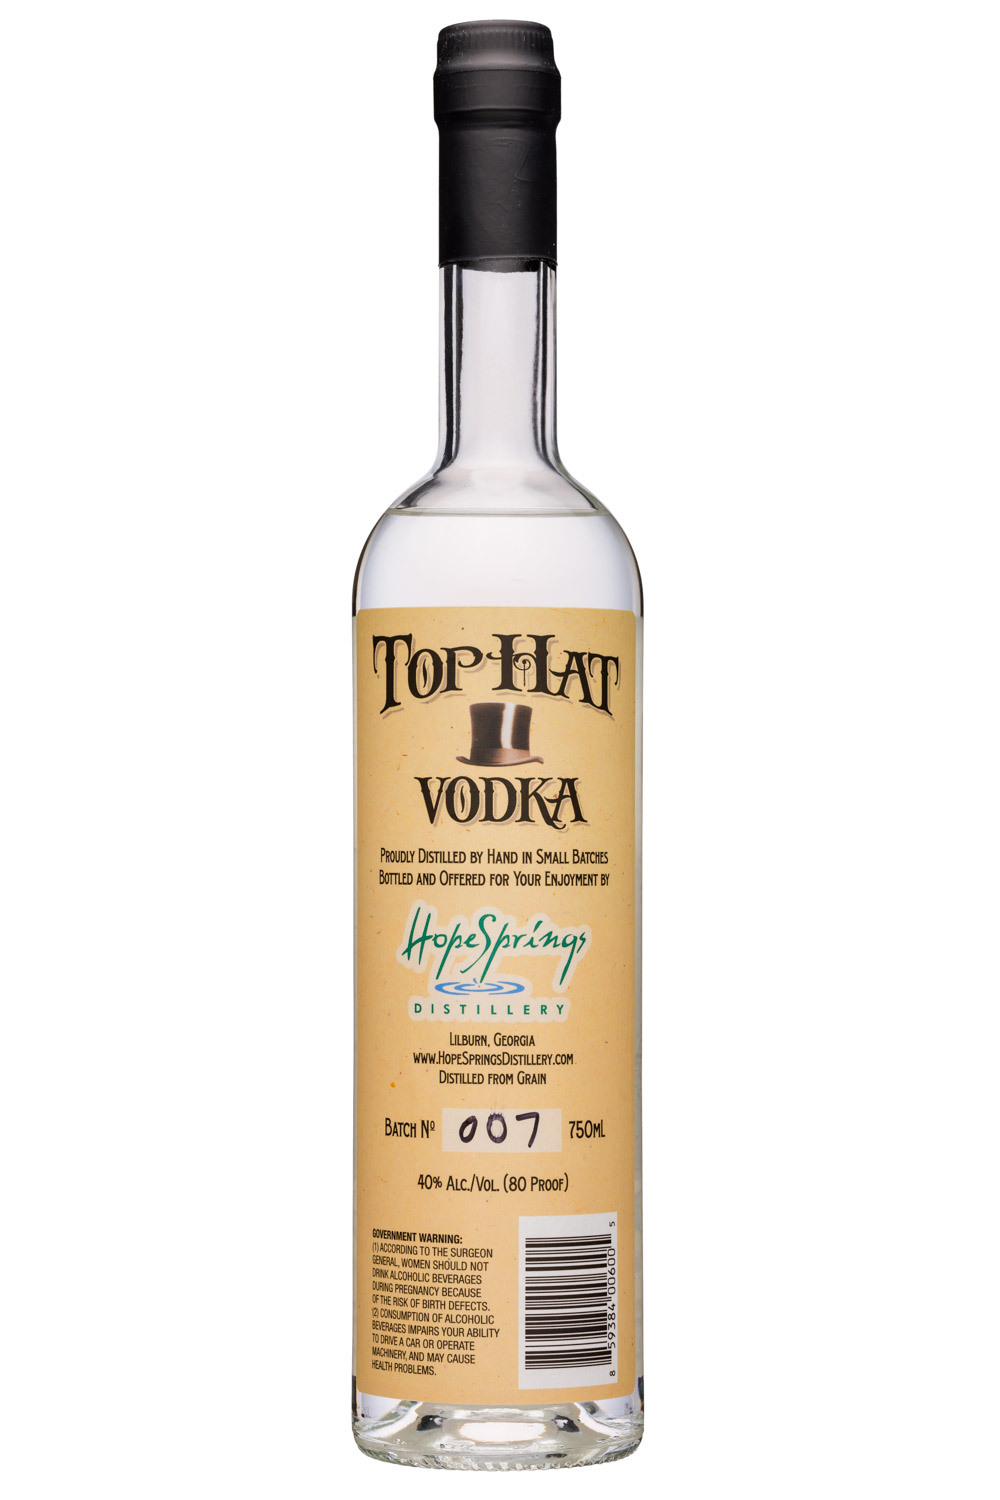 Top Hat Vodka